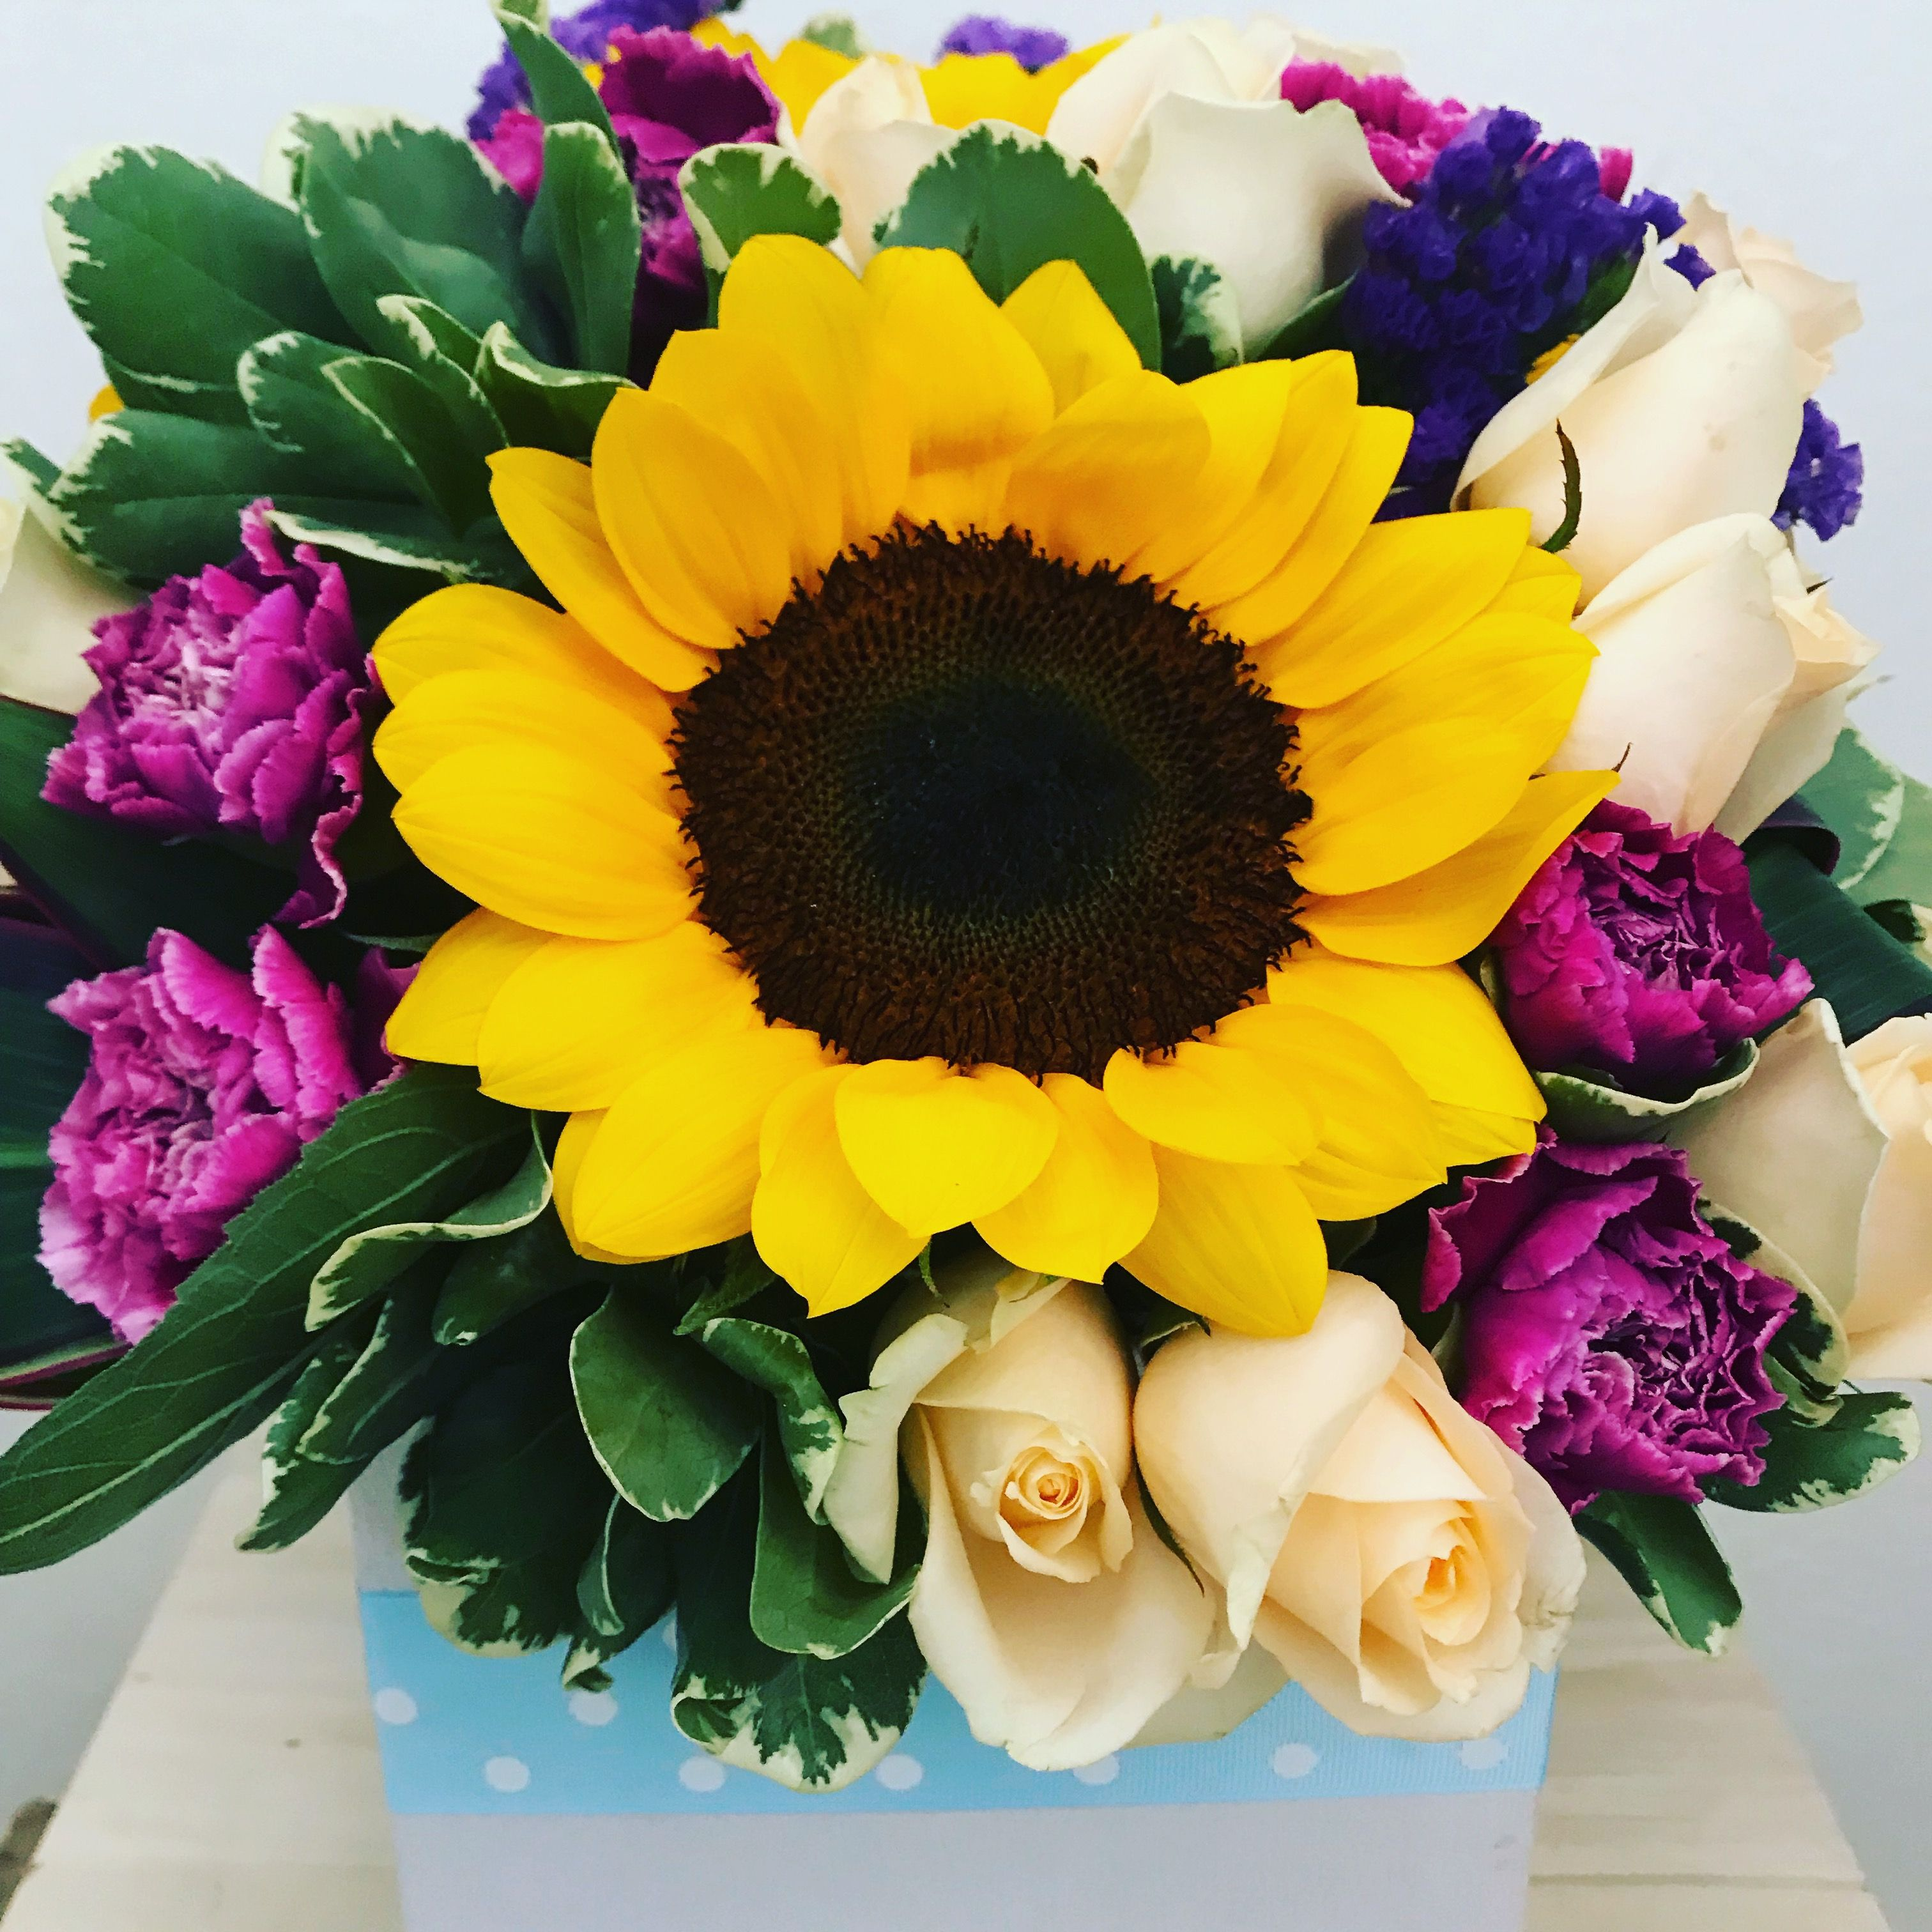 Sunflower Flower Delivery In Singapore Flower Delivery Same Day Flower Delivery Fast Flowers